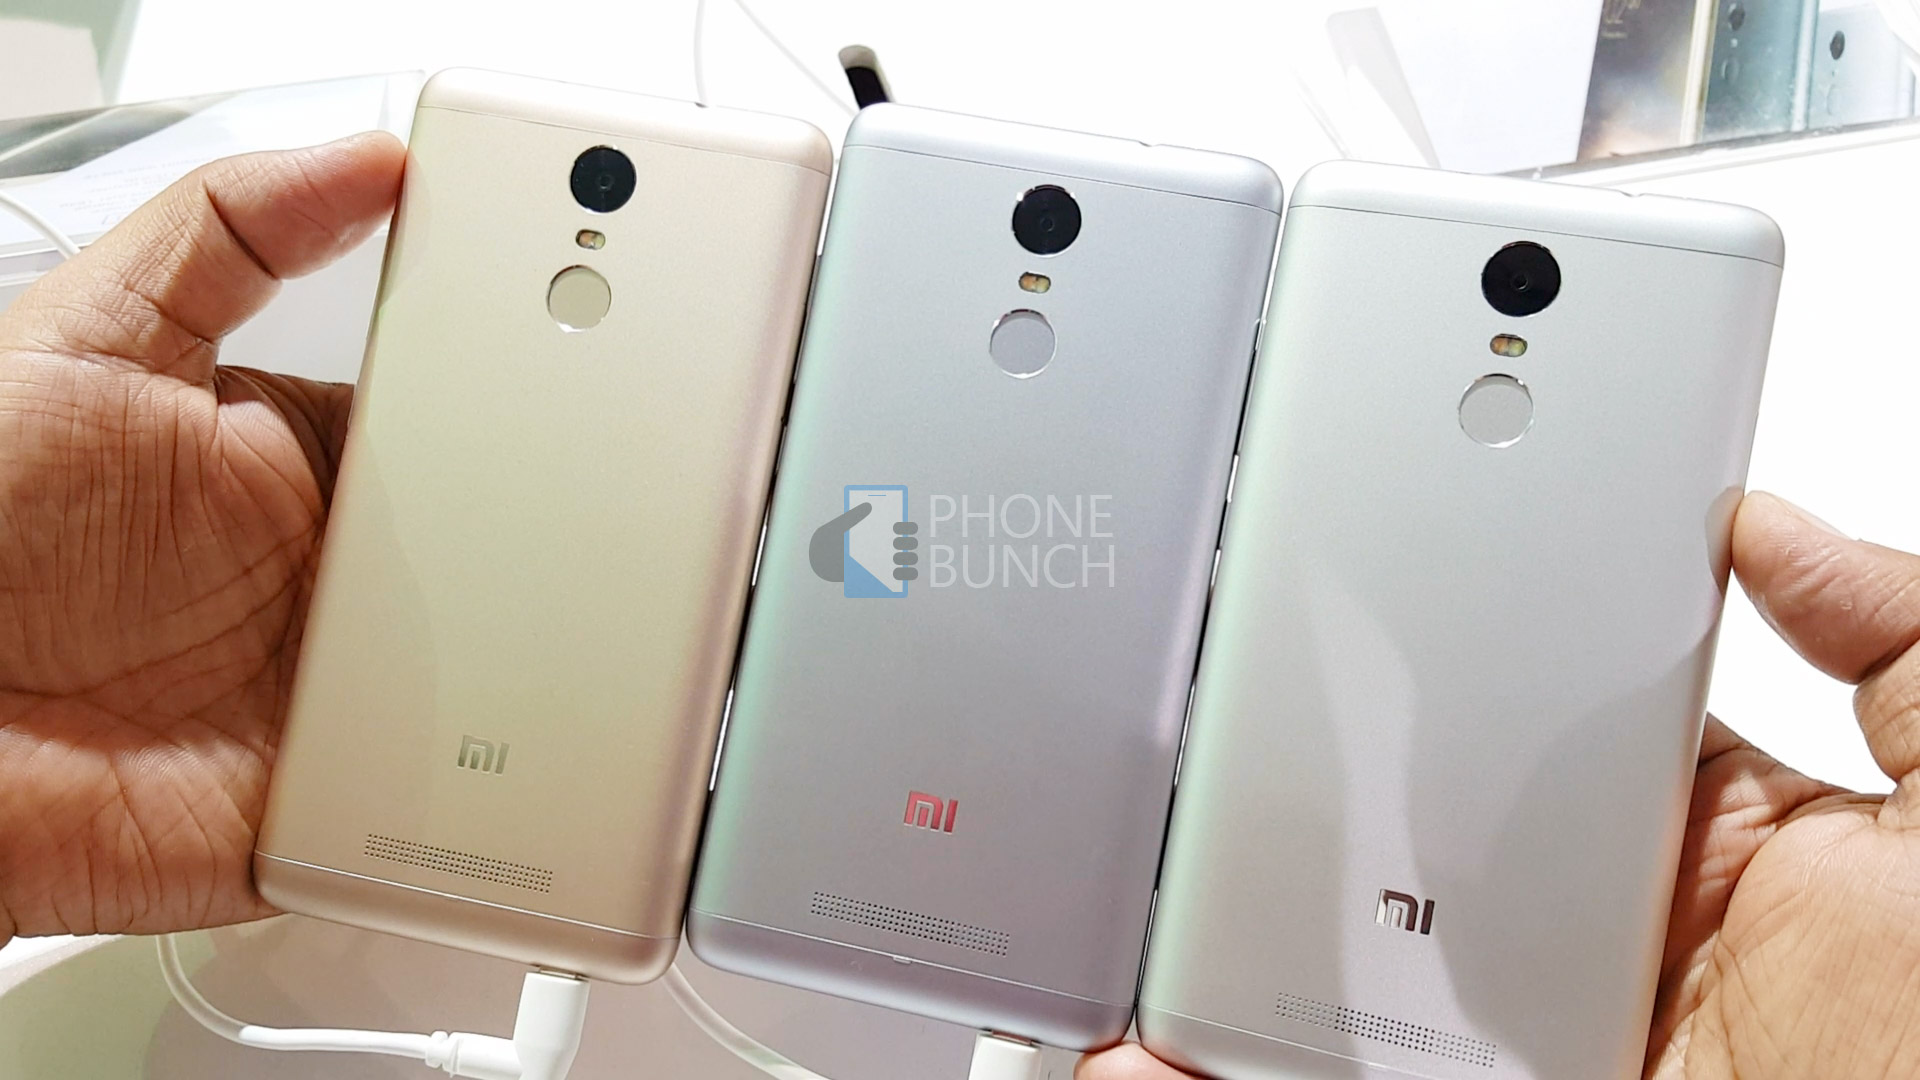 Harga Jual Xiaomi Redmi Note 3 Pro 32gb Gold Terbaru 2018 32 Gb Hands On Overview And First Impressions Phonebunch India Grey